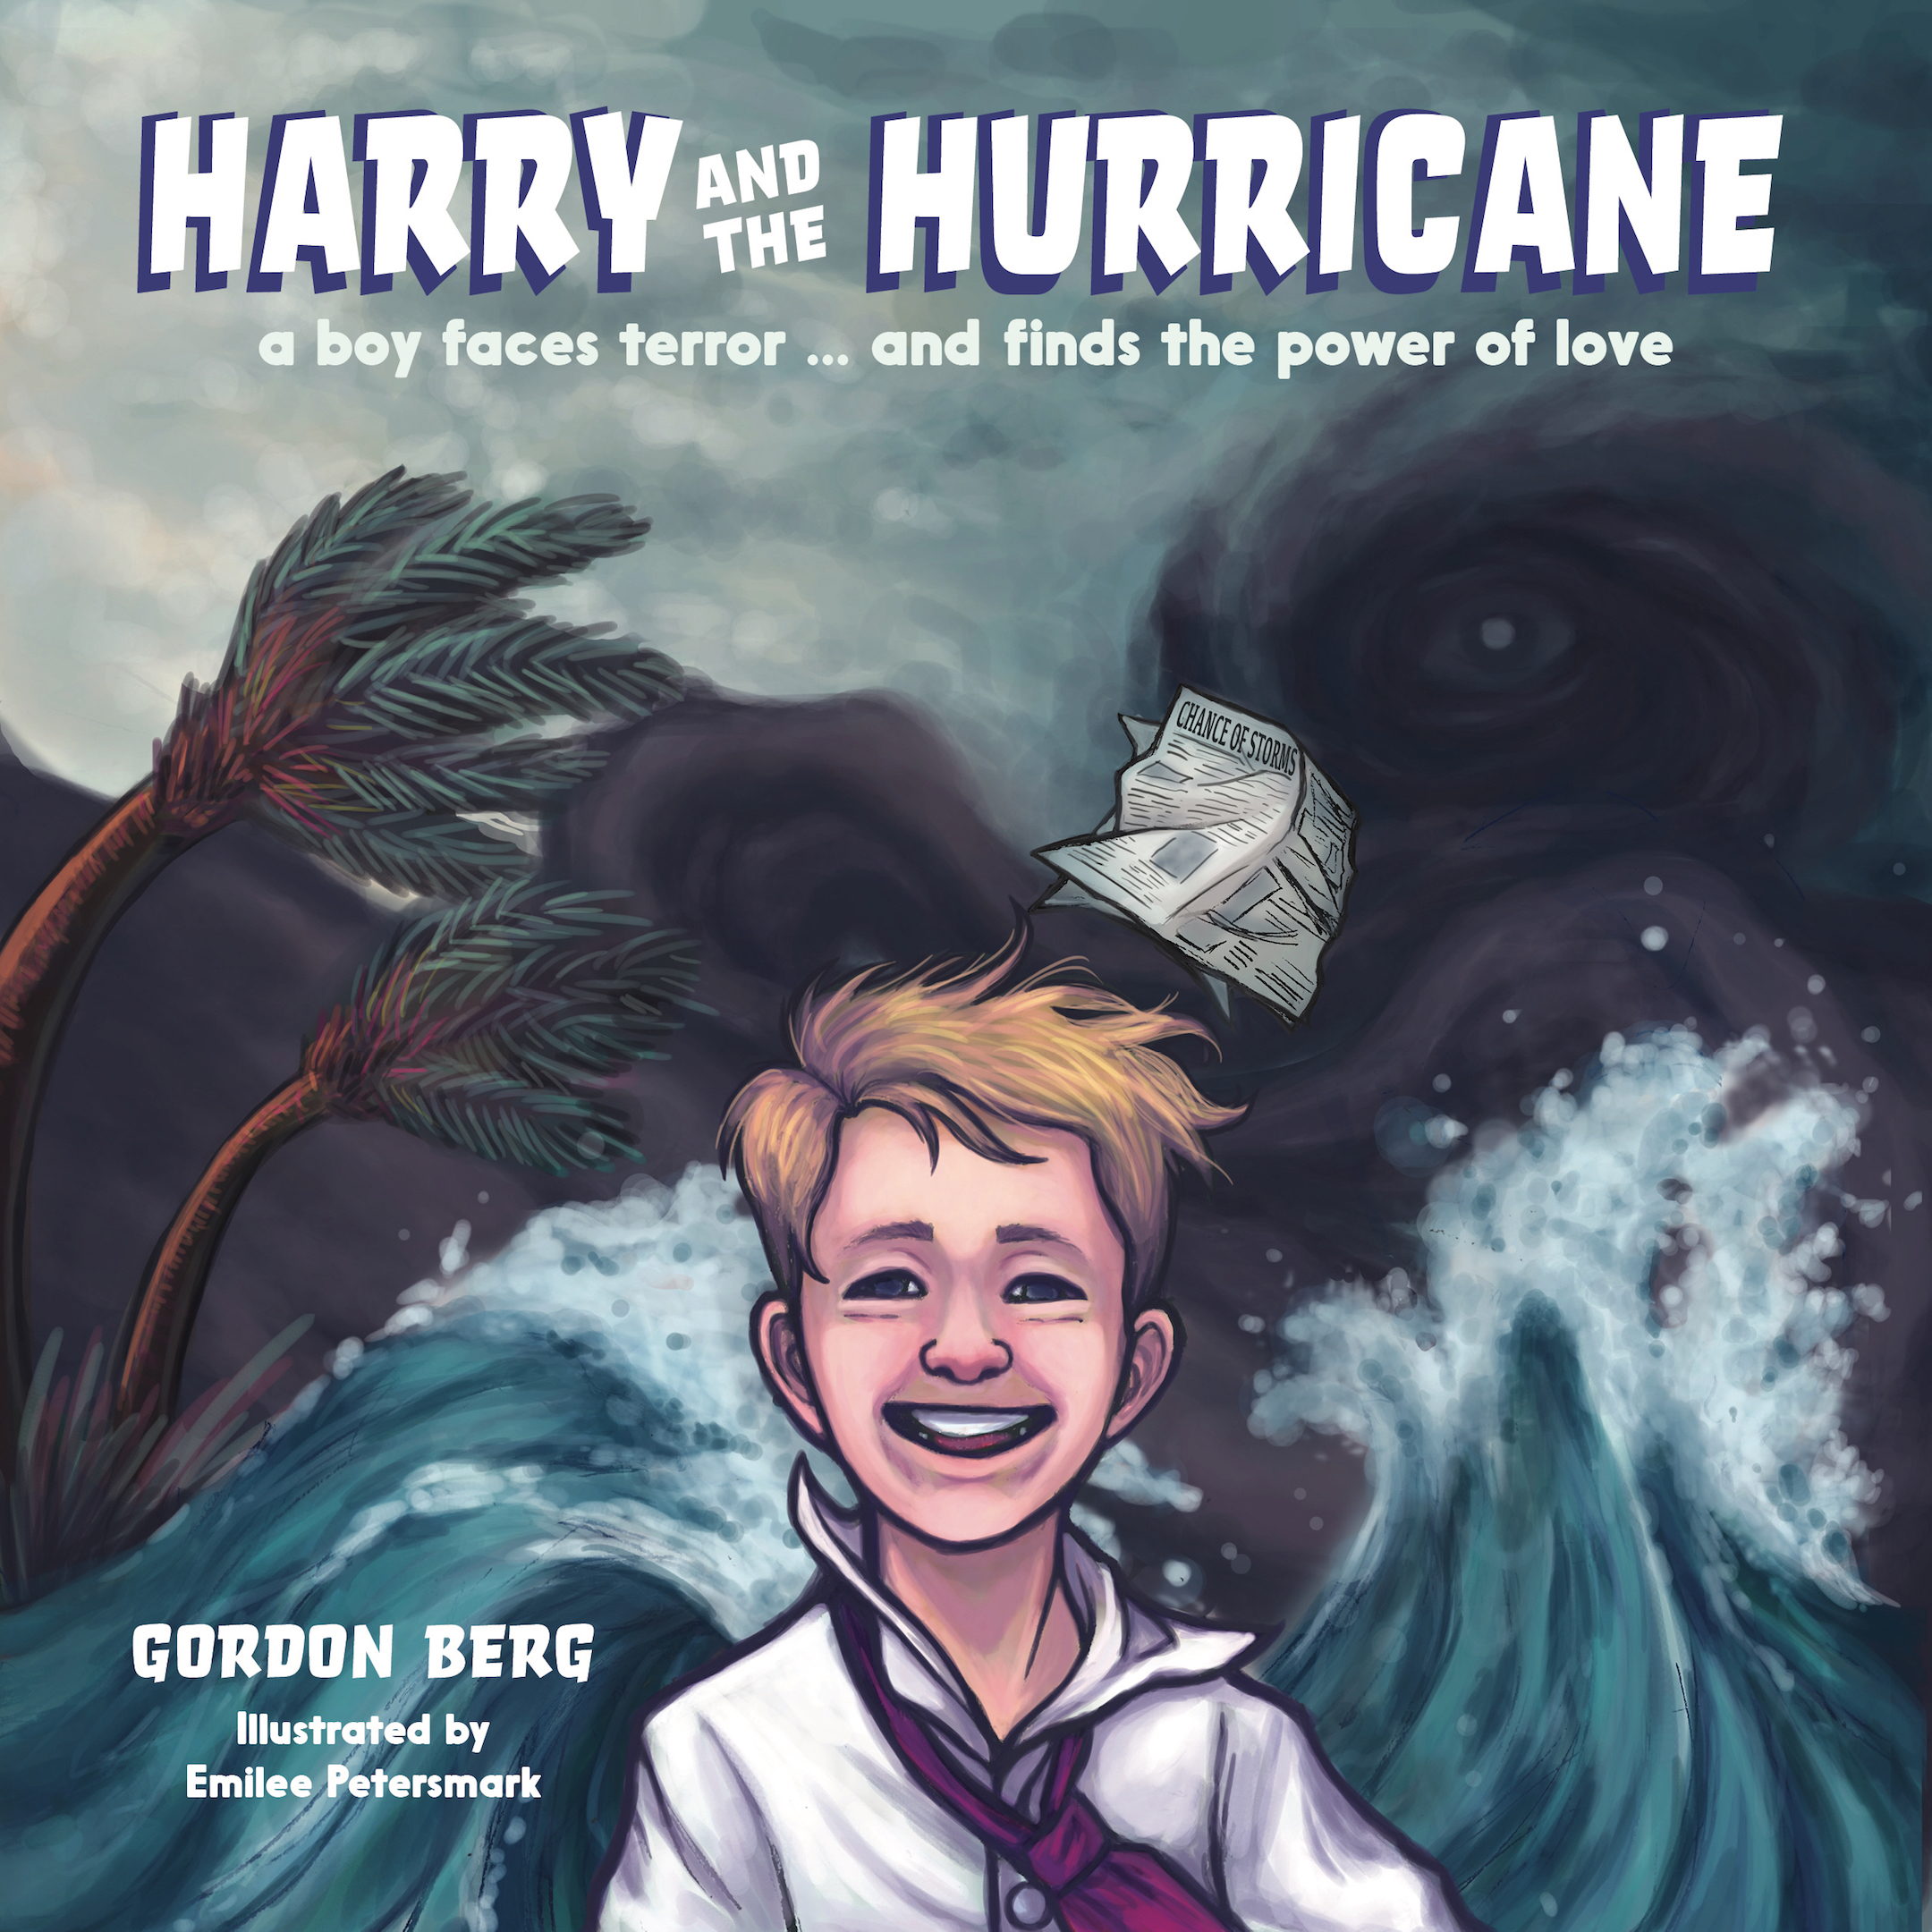 """A dramatic and absorbing tale of a historic storm."" — Kirkus Reviews - ""Dramatic! Enthralling! The destructive fury of a wicked storm leaves a lifelong imprint tempered by time and the strength, generosity and compassion of the human spirit.""— Sue Bumpus, Hurricane Hugo survivor, 1989"